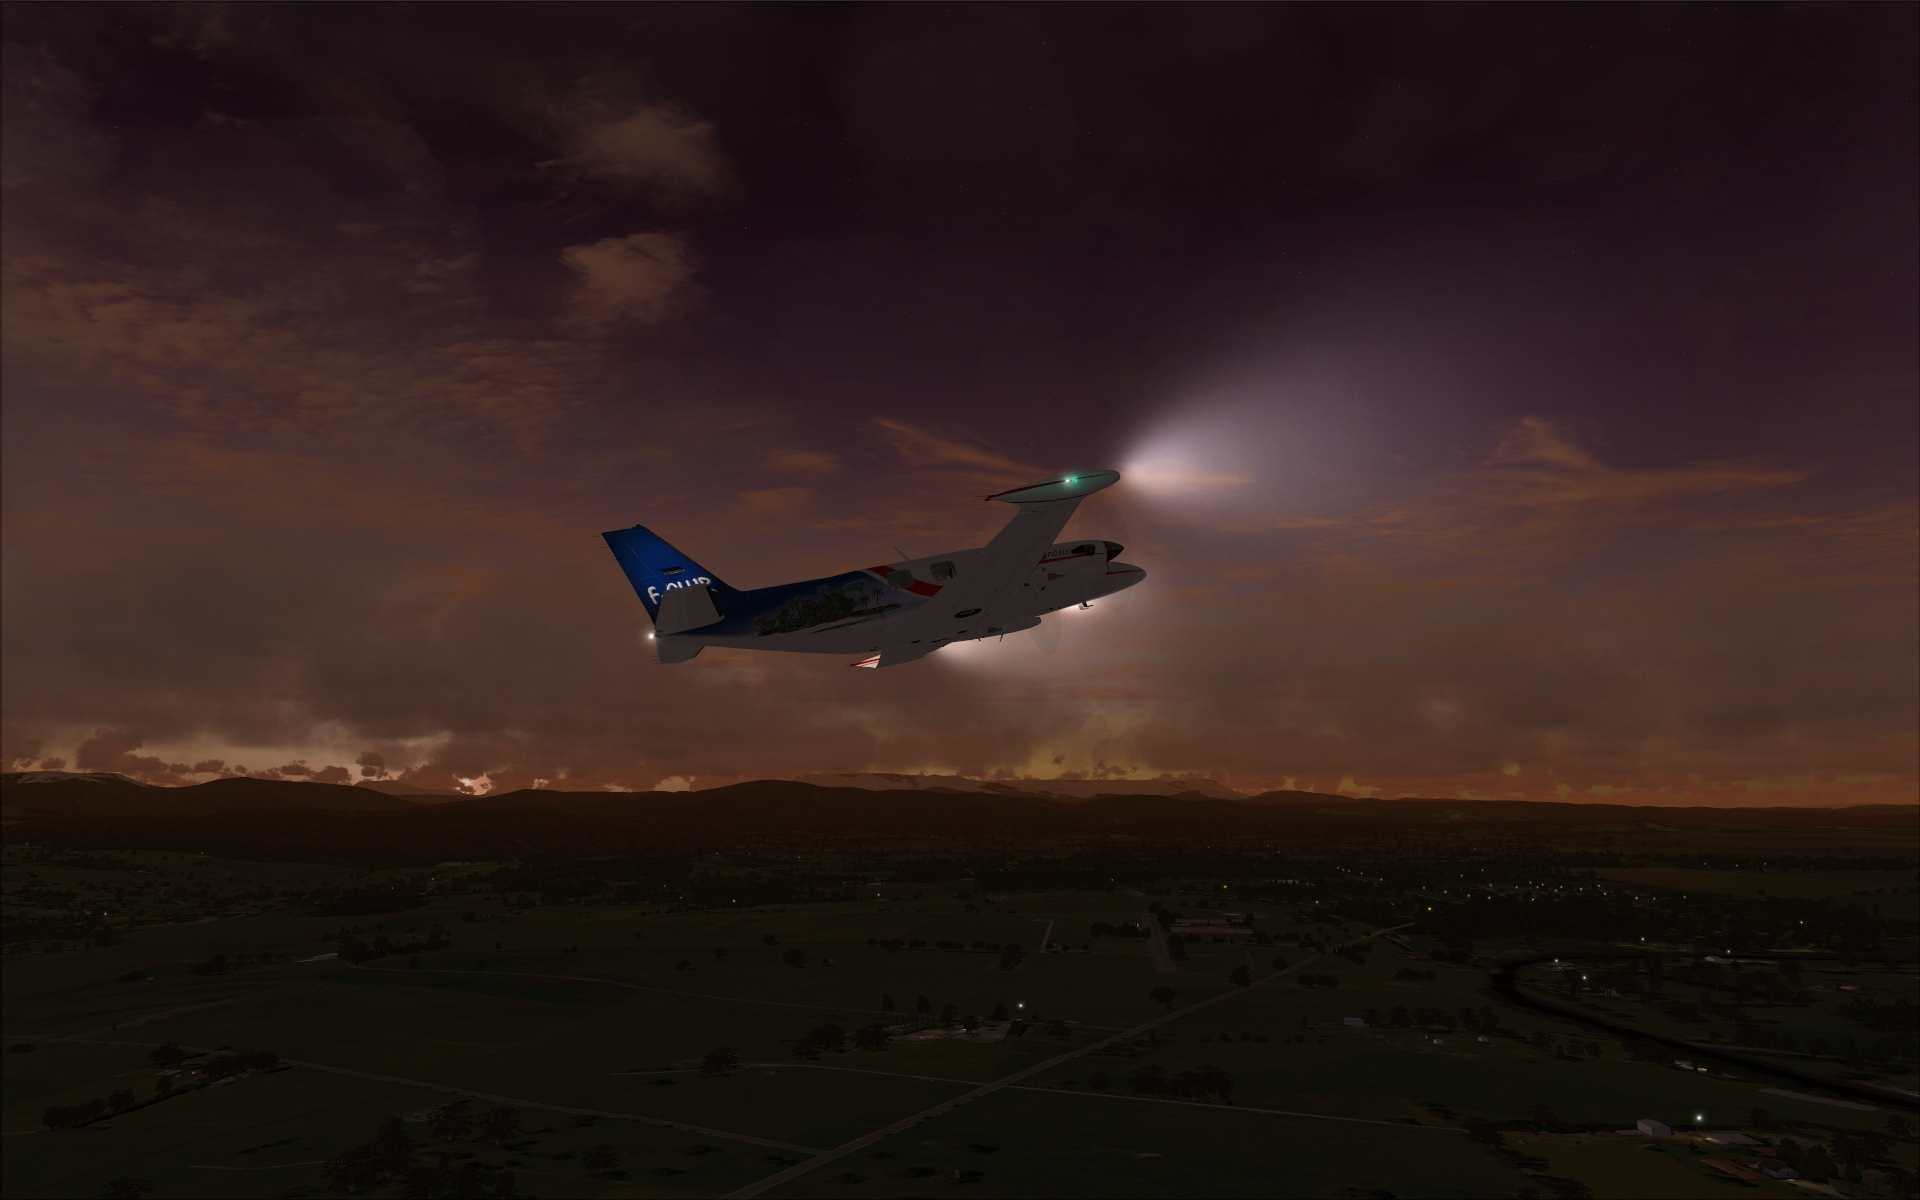 My wallpaper   FSX Screenshots   REX Support Forums 1920x1200